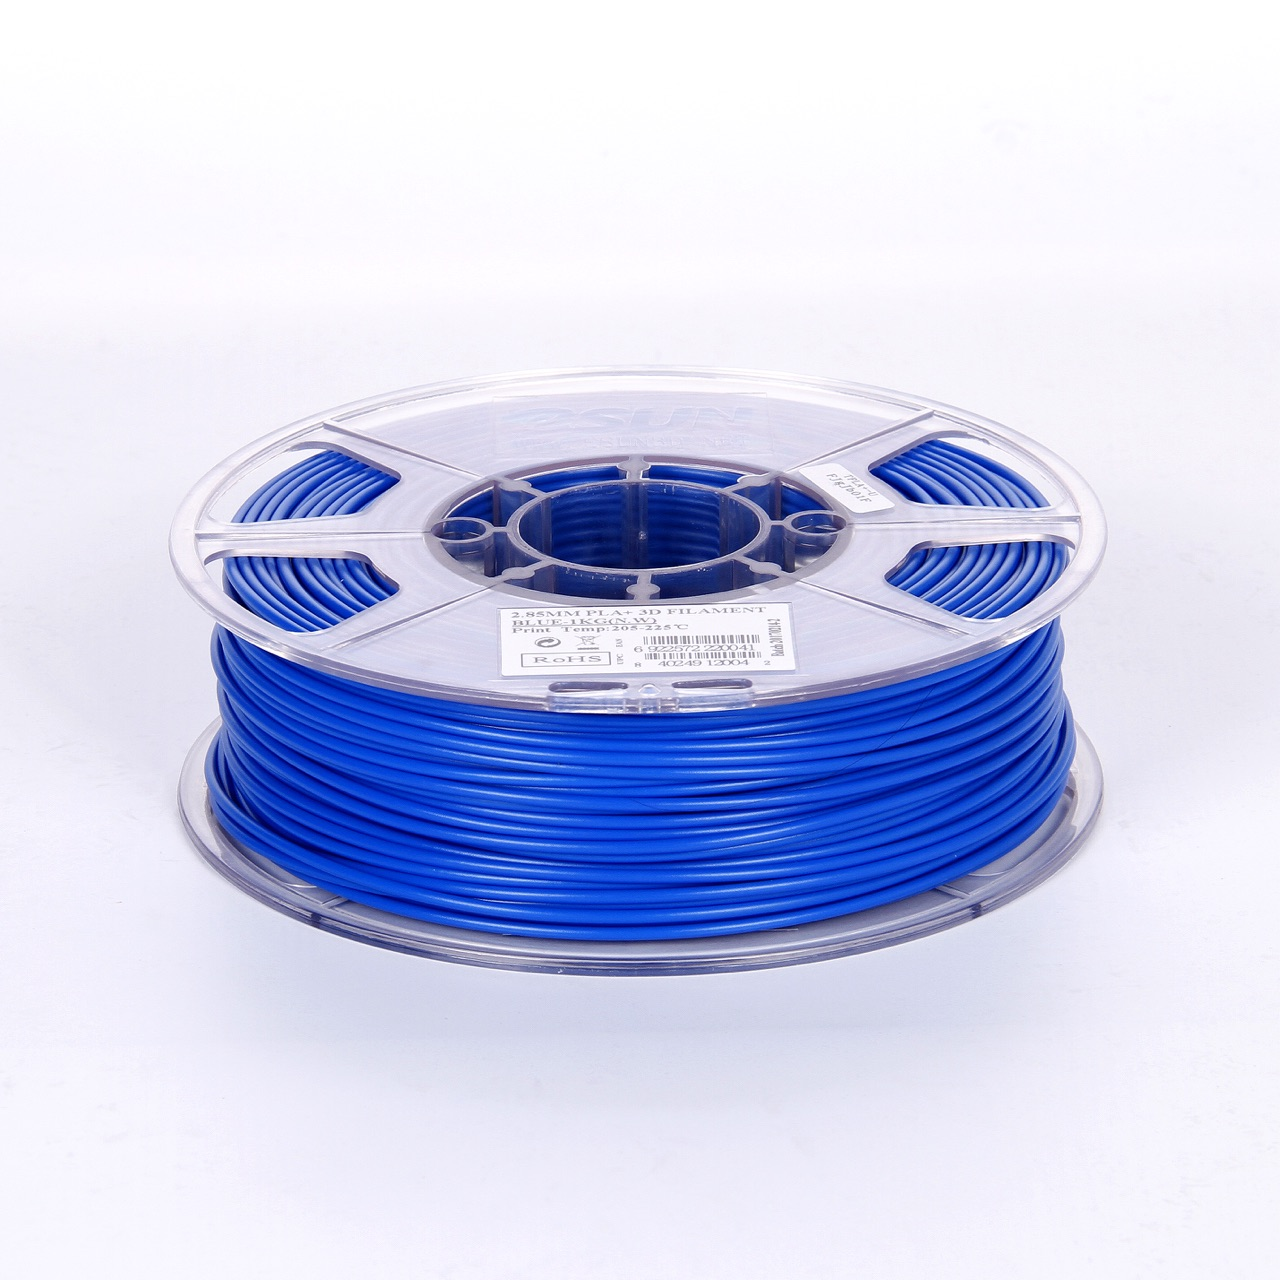 PLA filament, 2.85mm (3.0mm Compatible), Blue, 1kg/spool - MK-PLA300BE